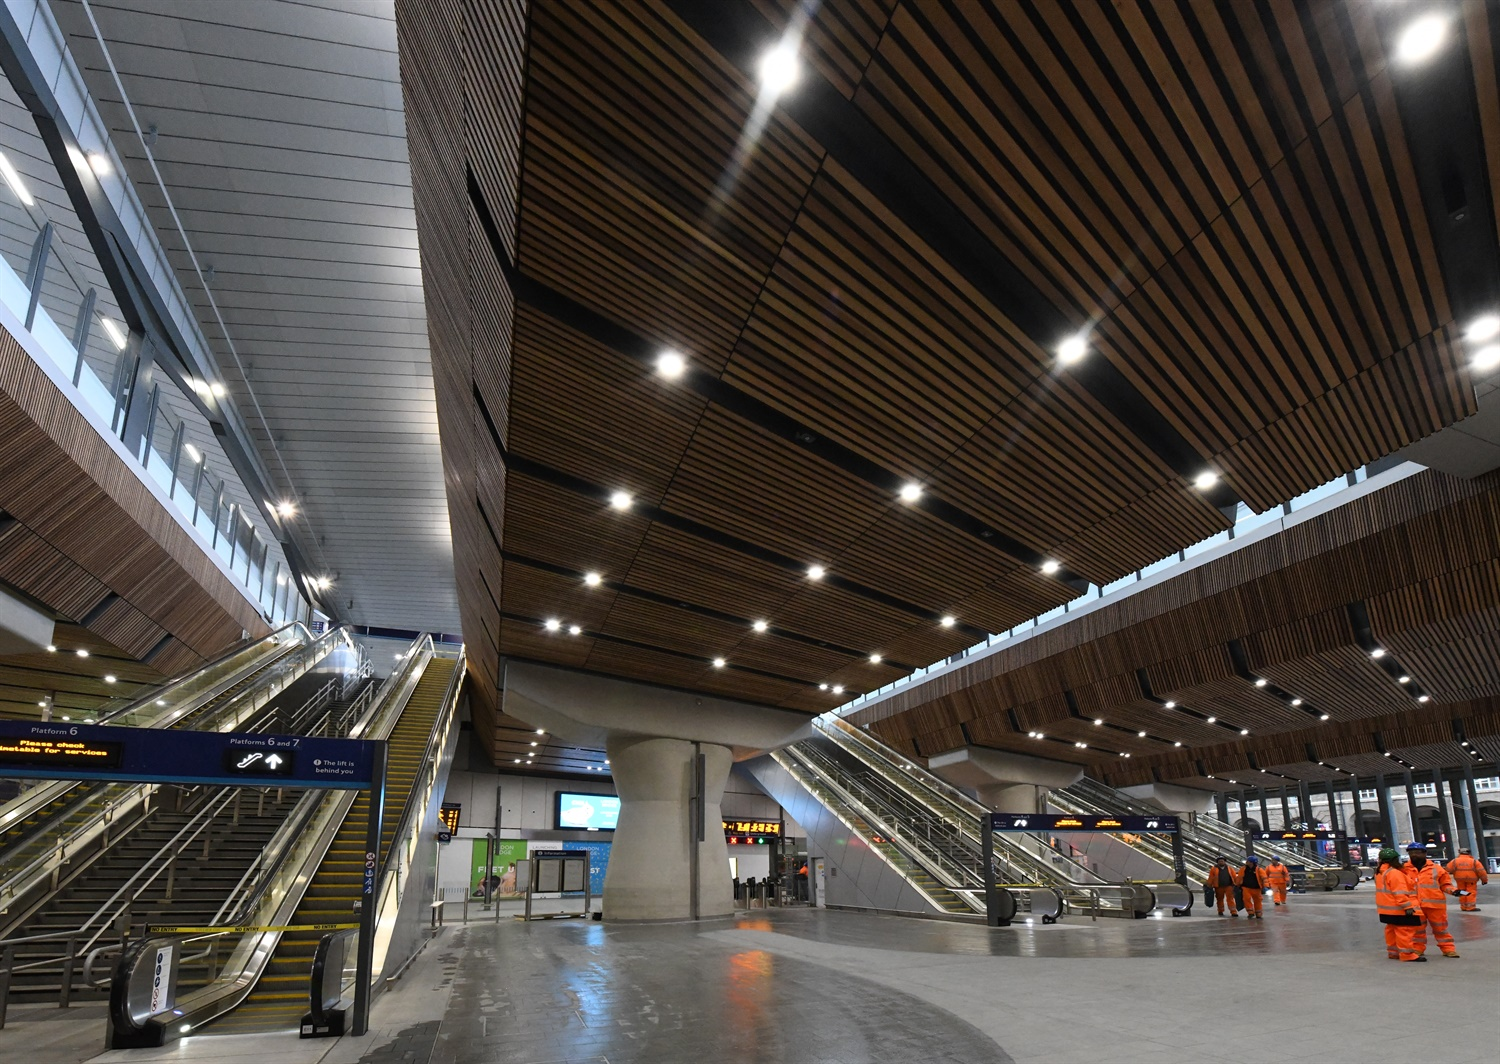 London Bridge opens 'huge' new concourse following Christmas works